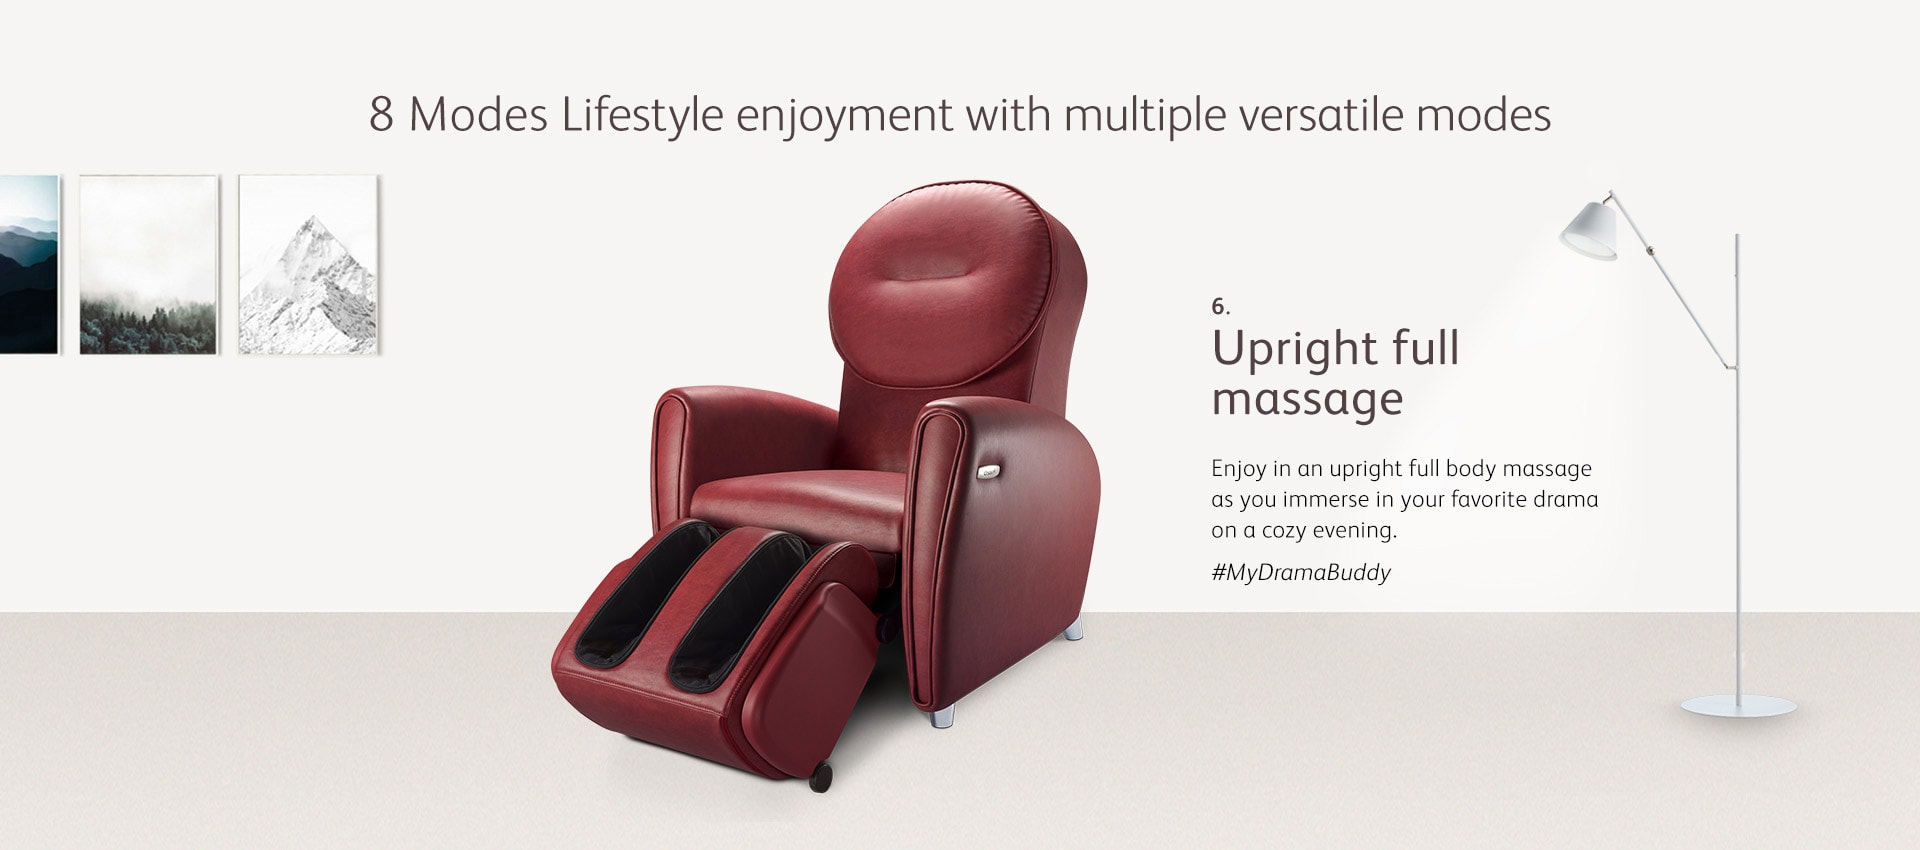 Udiva2 Massage Chair Mode 6 Full Body Massage